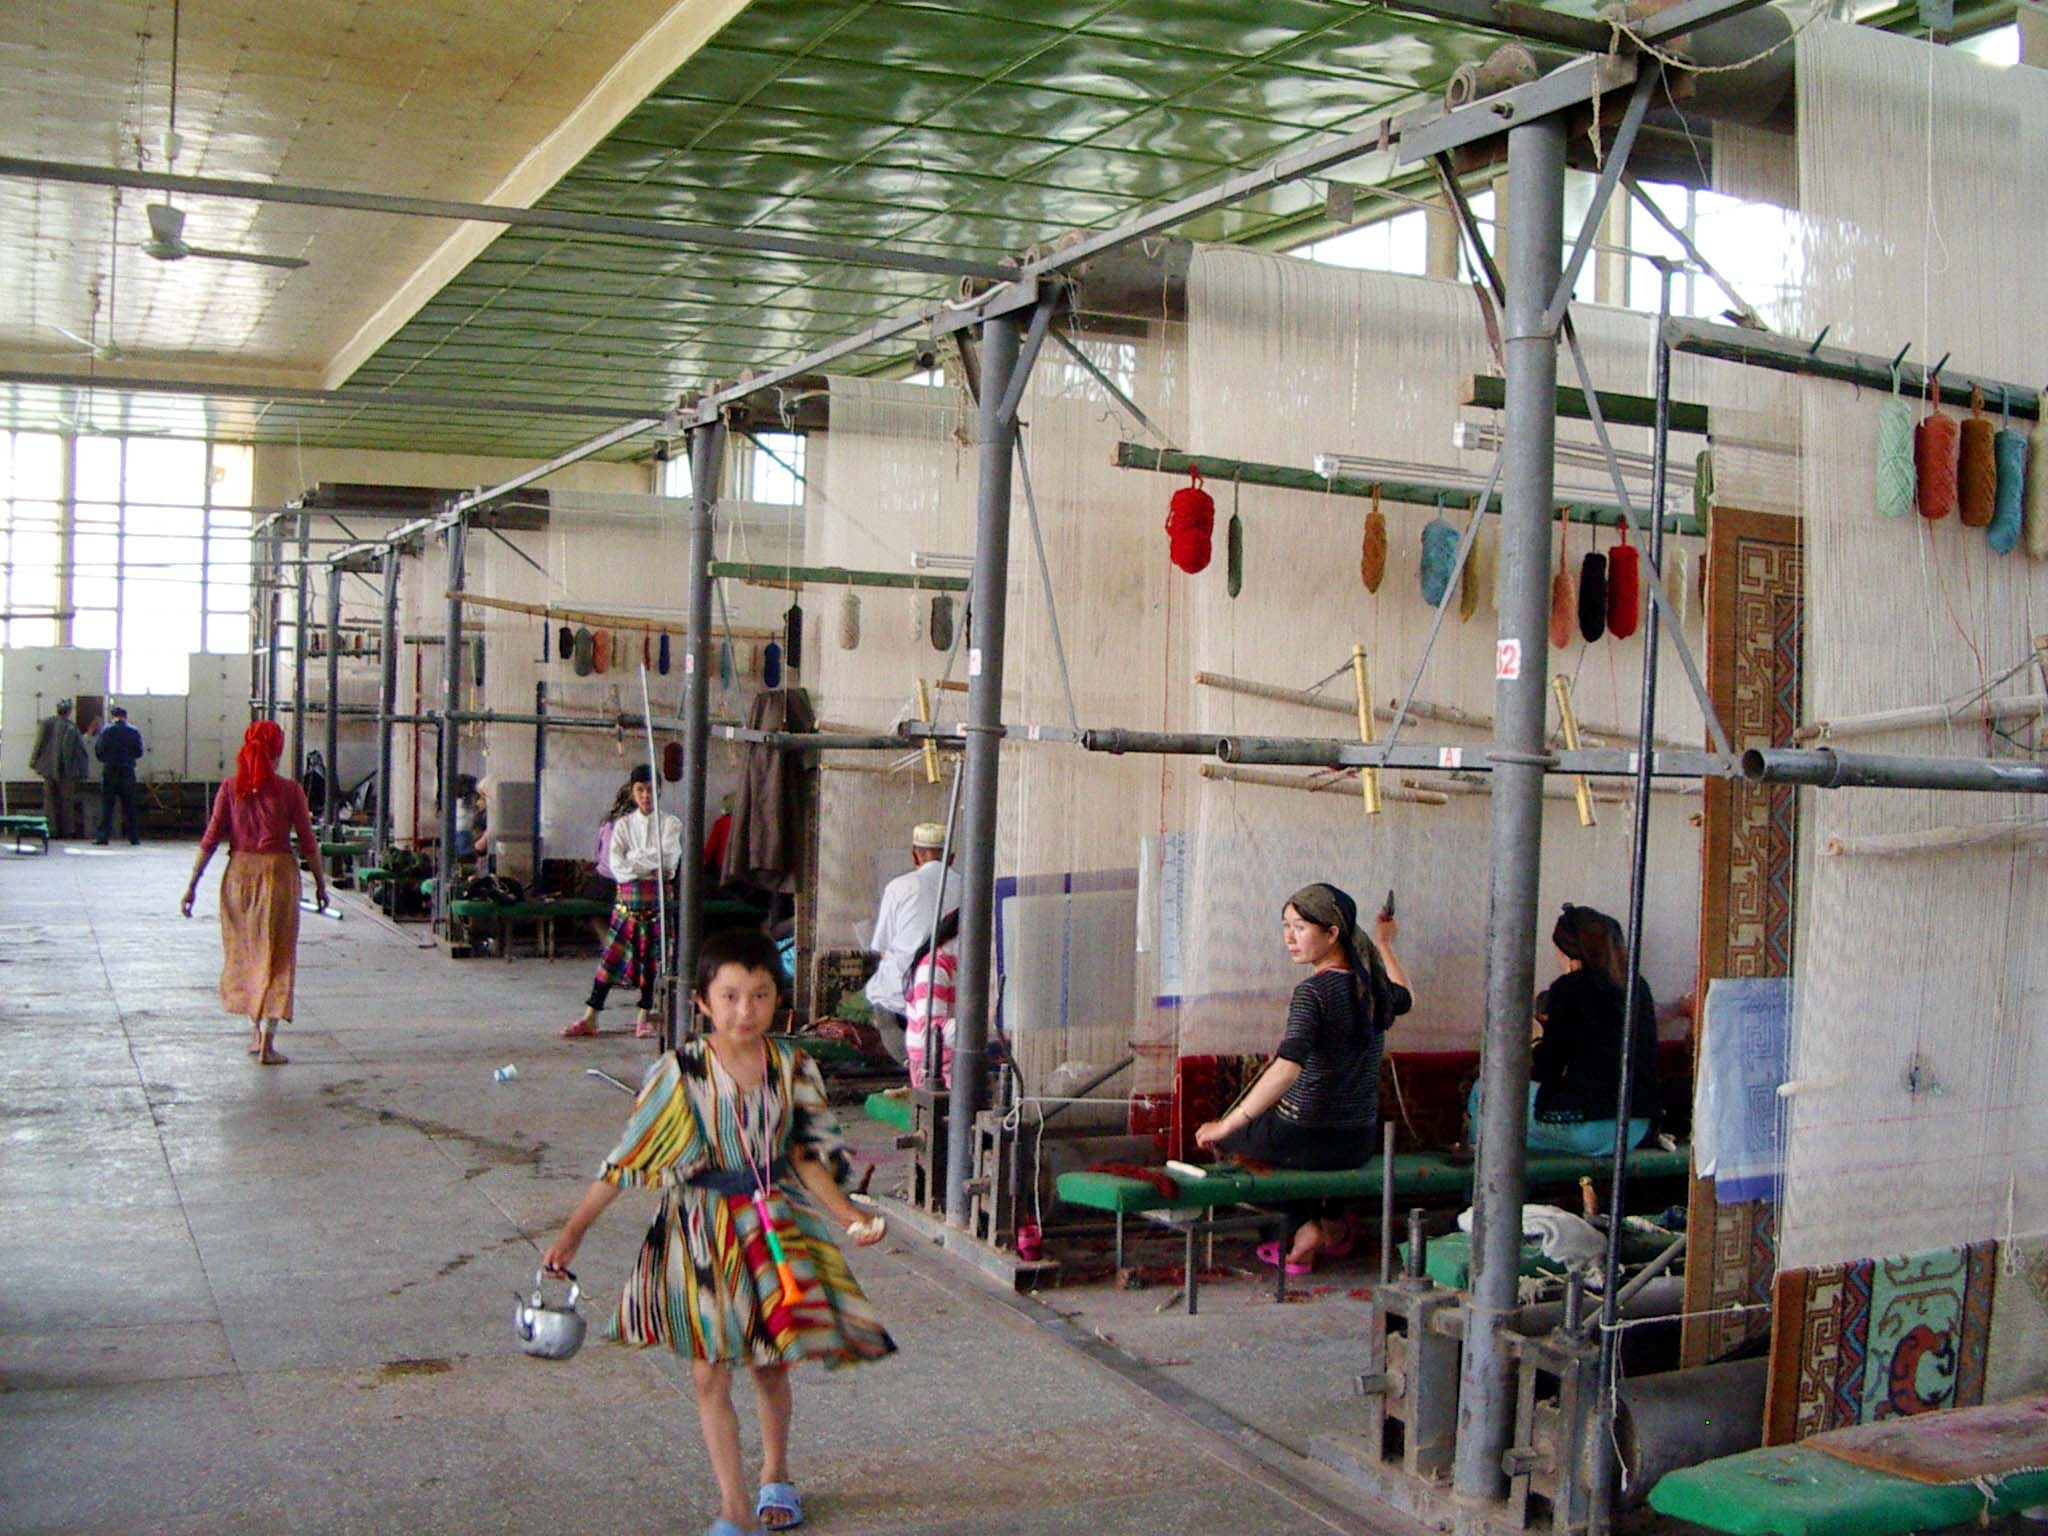 A wider view of the carpet factory (gillam karakhana in Uyghur).